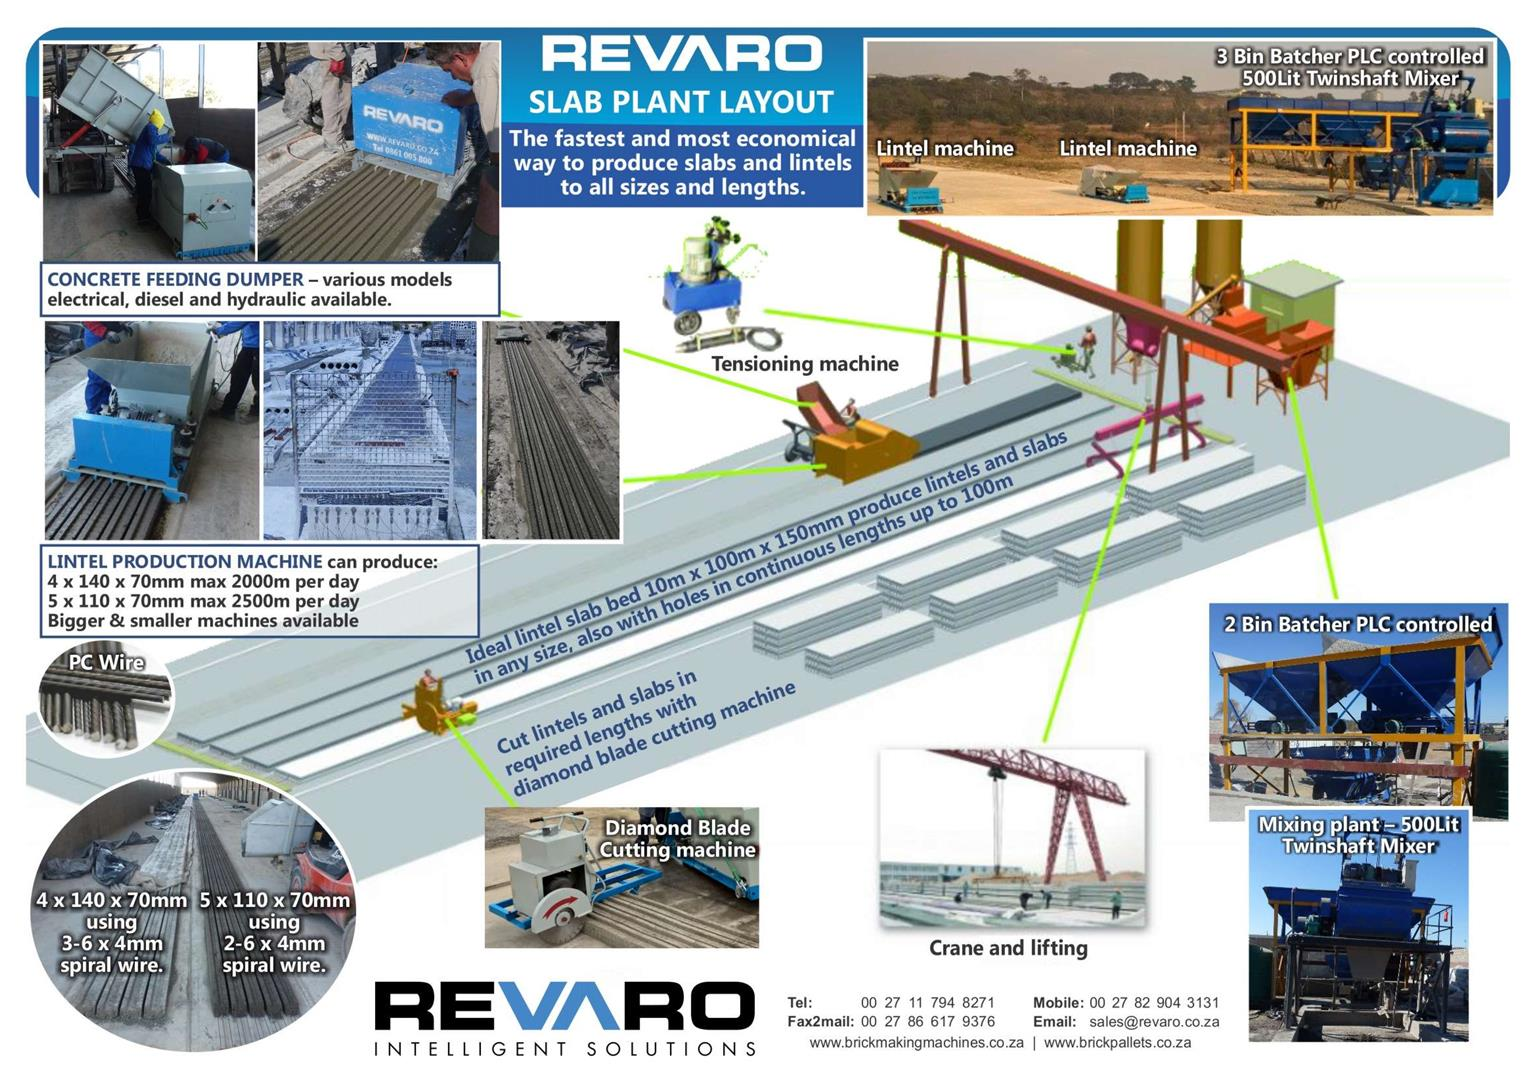 Revaro lintel 110x70 and 10x70 slabs 150,180,200and 150mm x60mm and prefab waals production machine